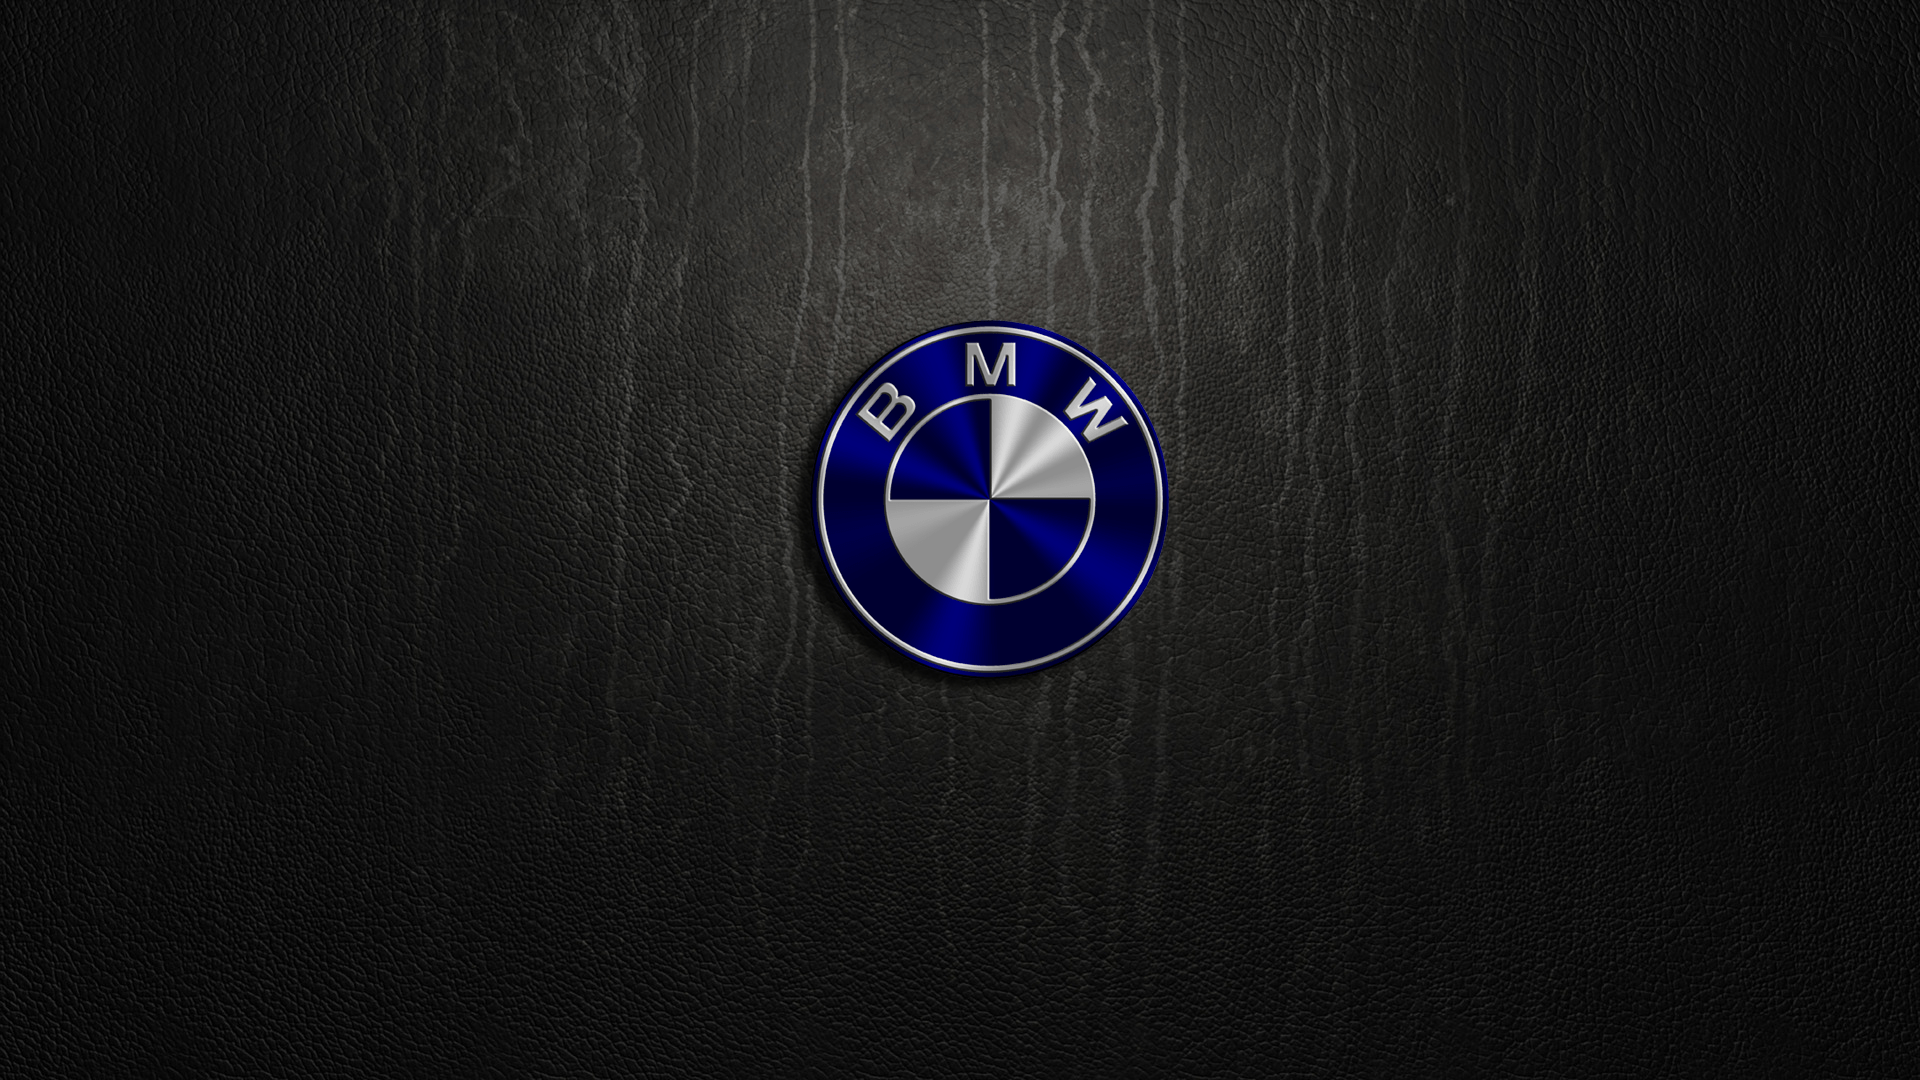 James Bond Iphone Wallpaper Bmw Logo Wallpapers Pictures Images